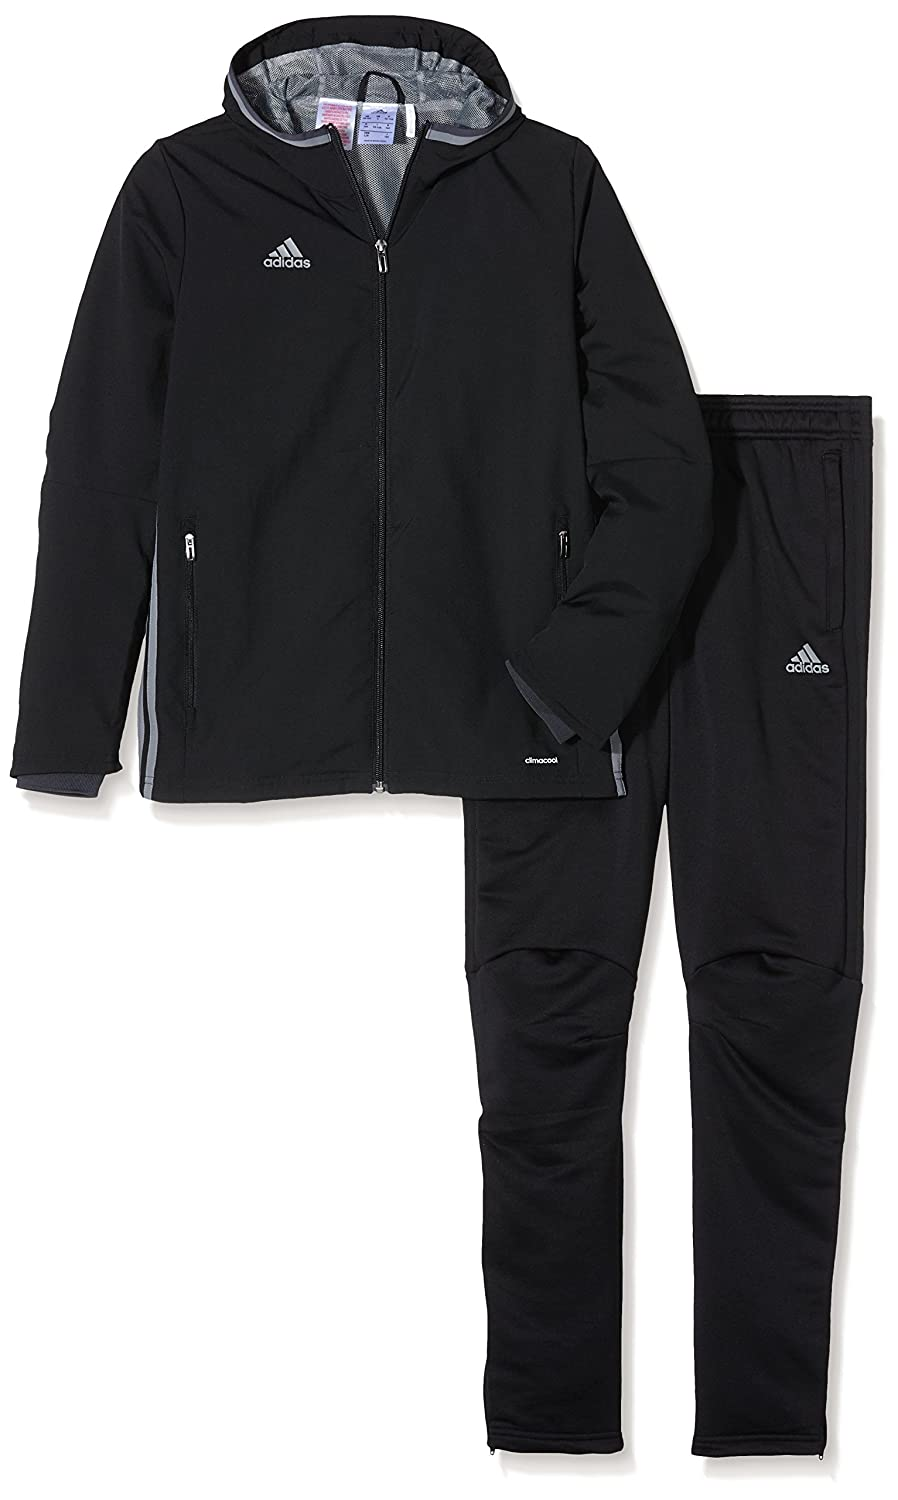 XXR Junior Tracksuit Boys Track Suit Kids Full Zip Jogging Top Bottoms Football Boxing Martial Art Exercise Fitness Yoga Running Gym Clothing